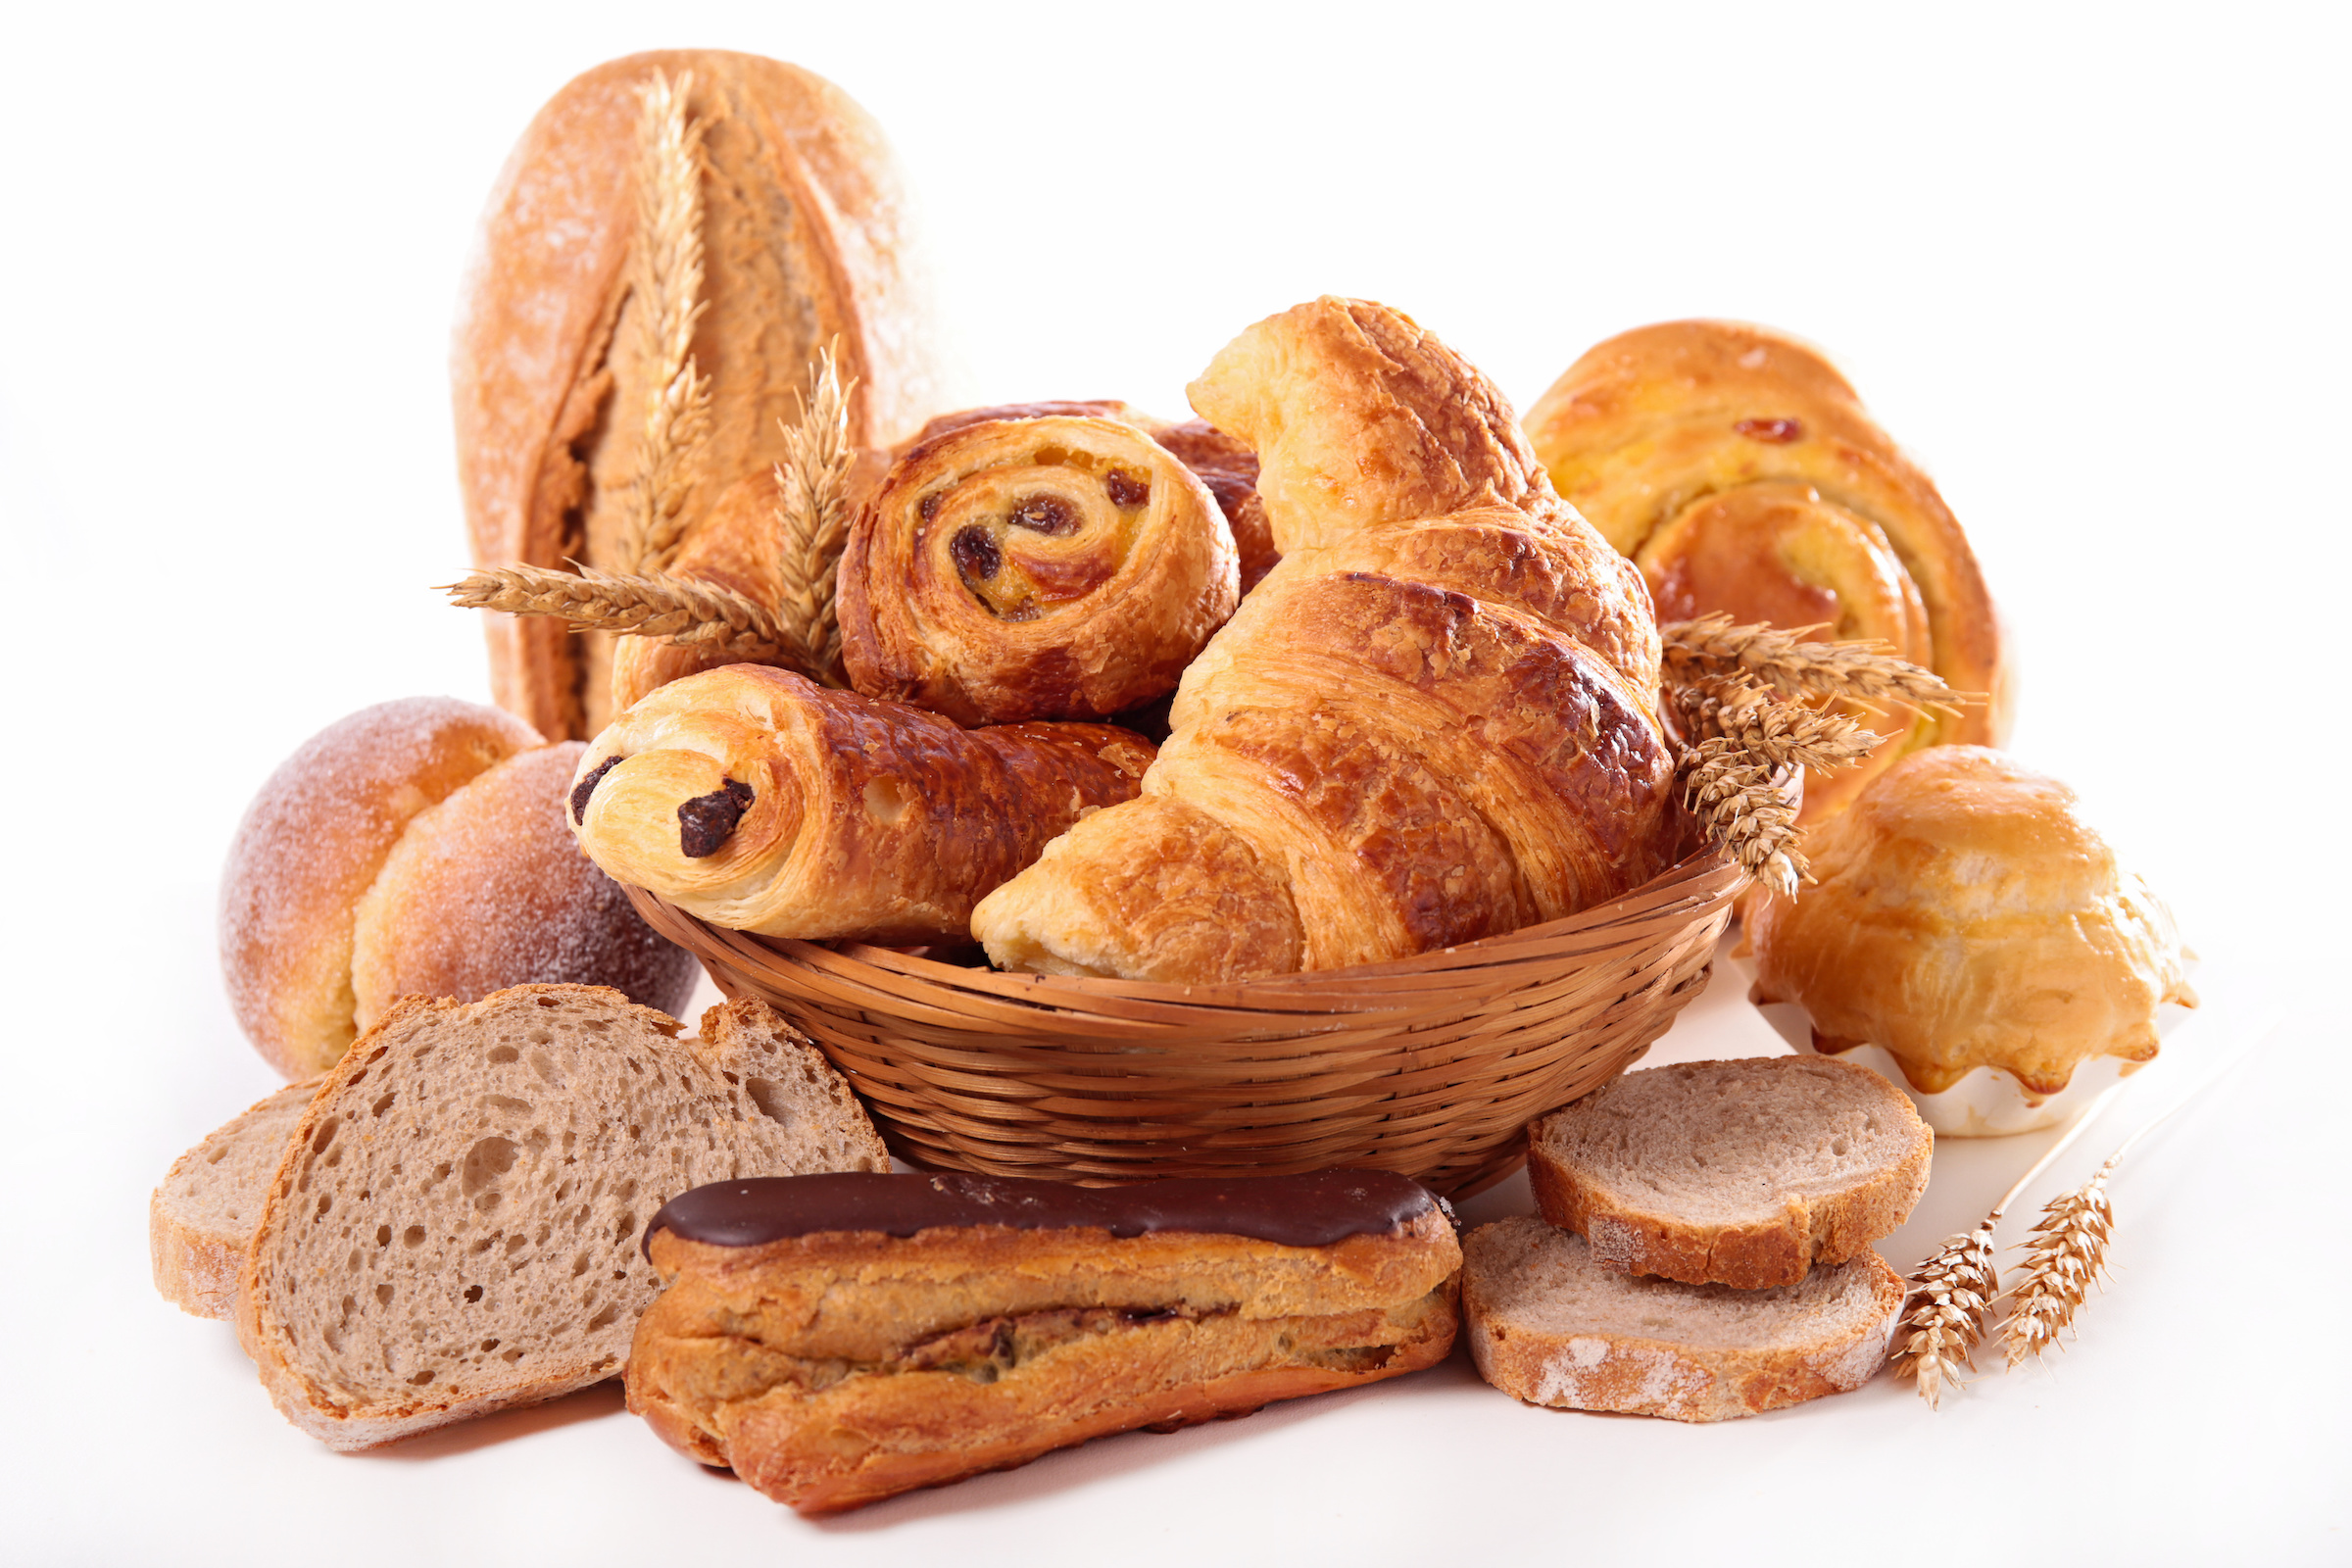 Bakery Goods Refined Carbs